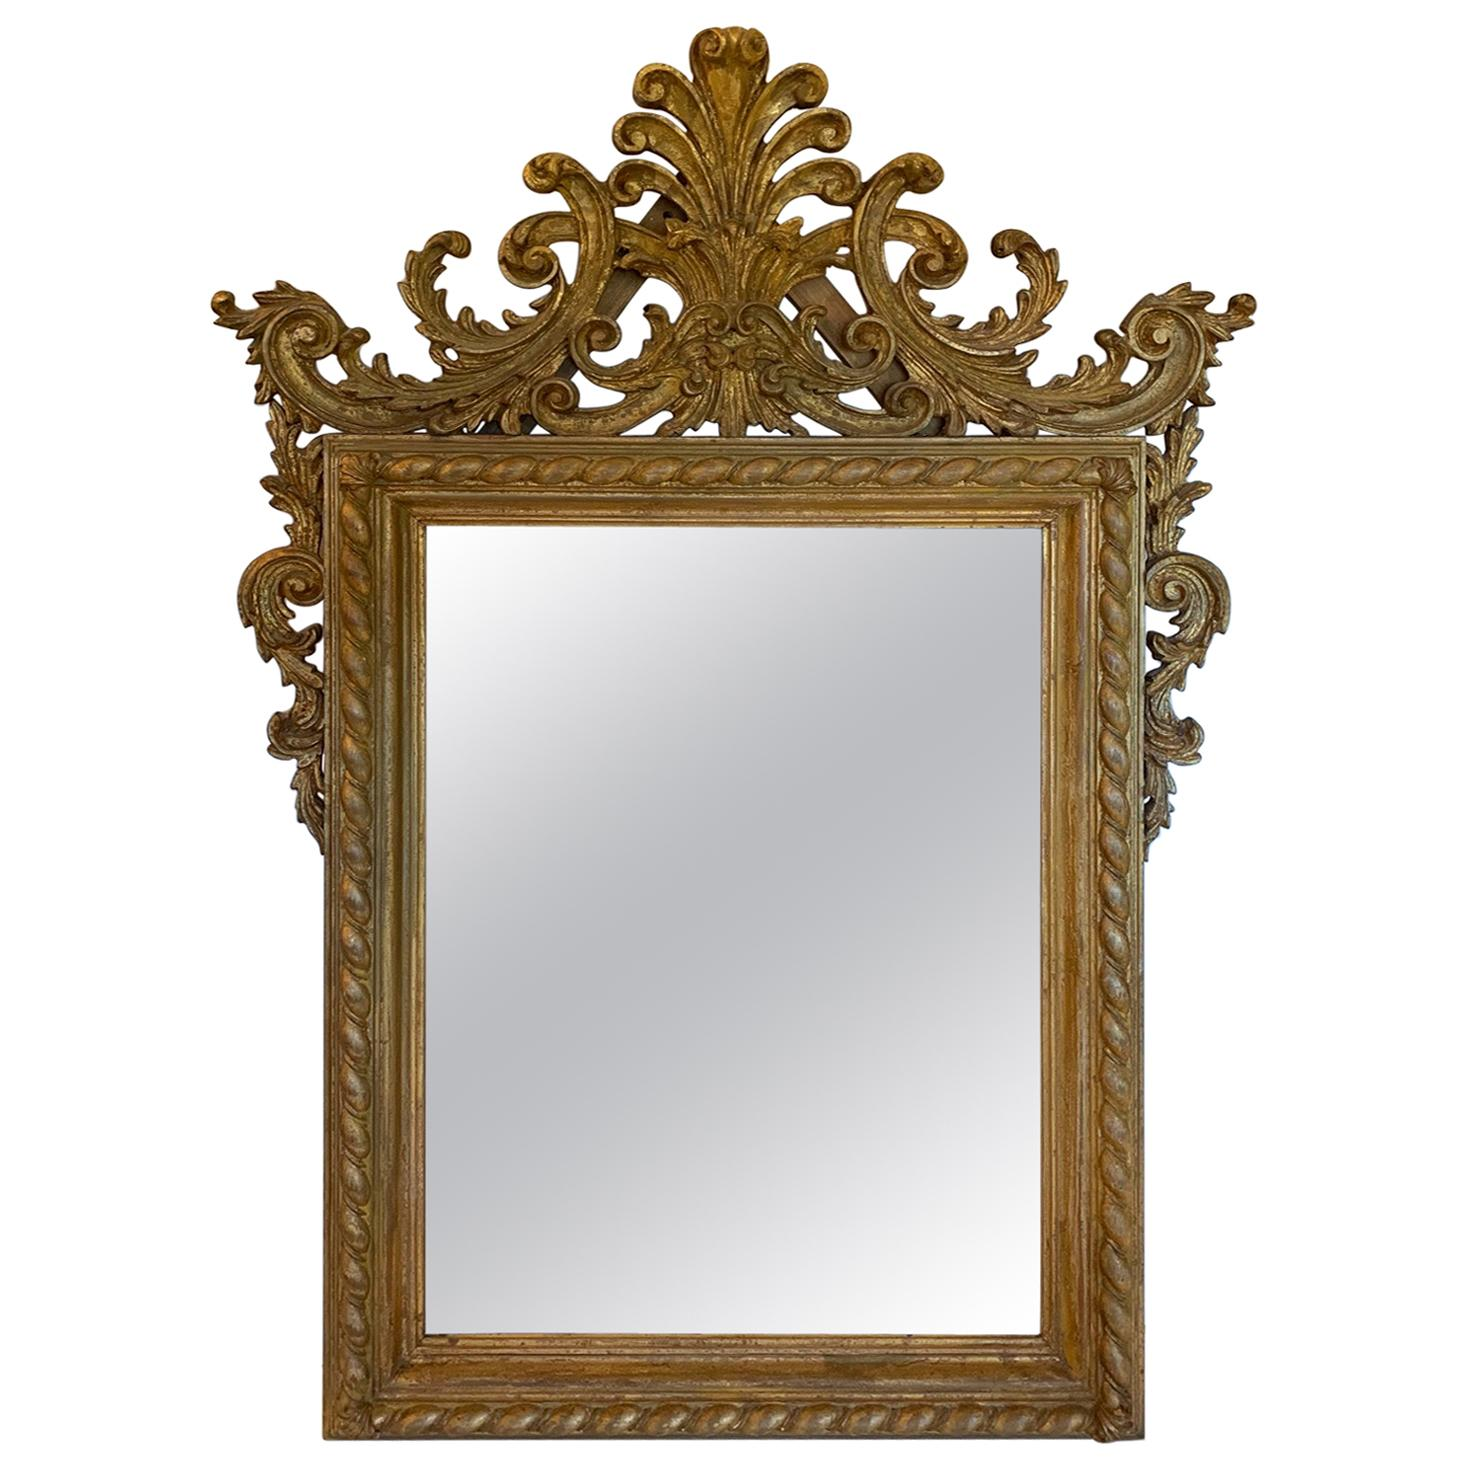 Magnificent Antique Italian Carved Giltwood Mirror